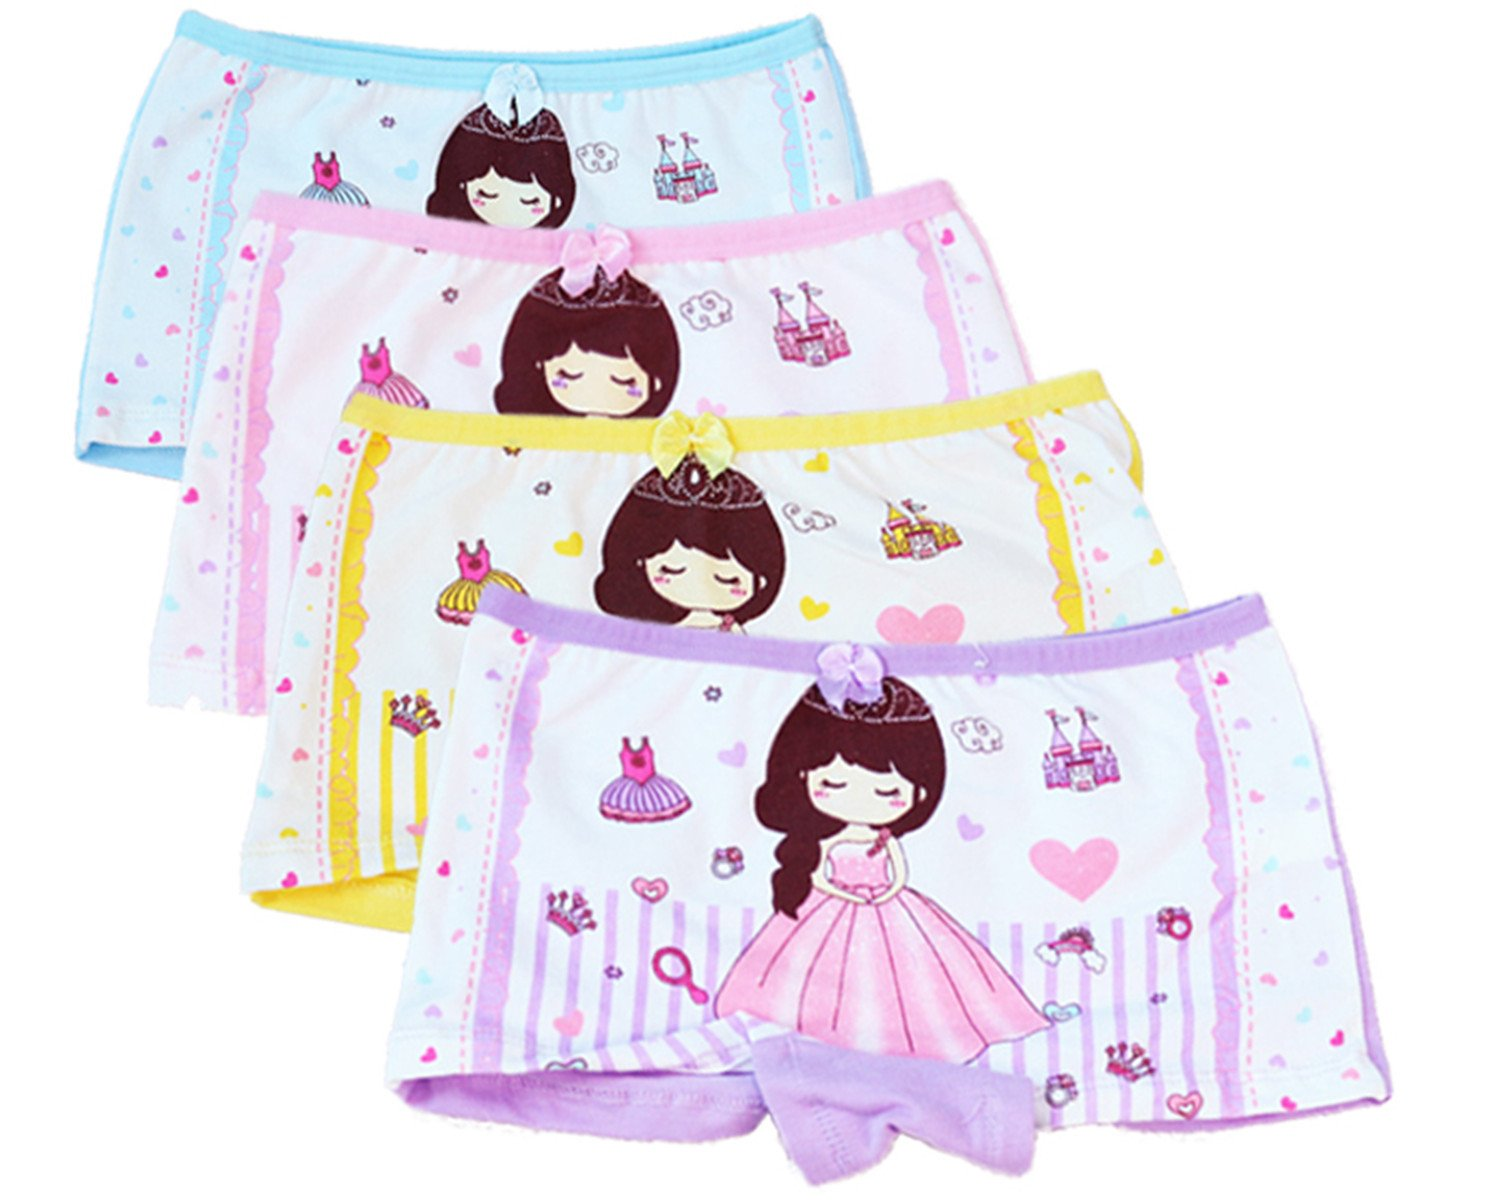 Little Girls Kids Baby Toddler 4Pcs Princess Girl Boyshort Underwear Boxers Briefs Panties